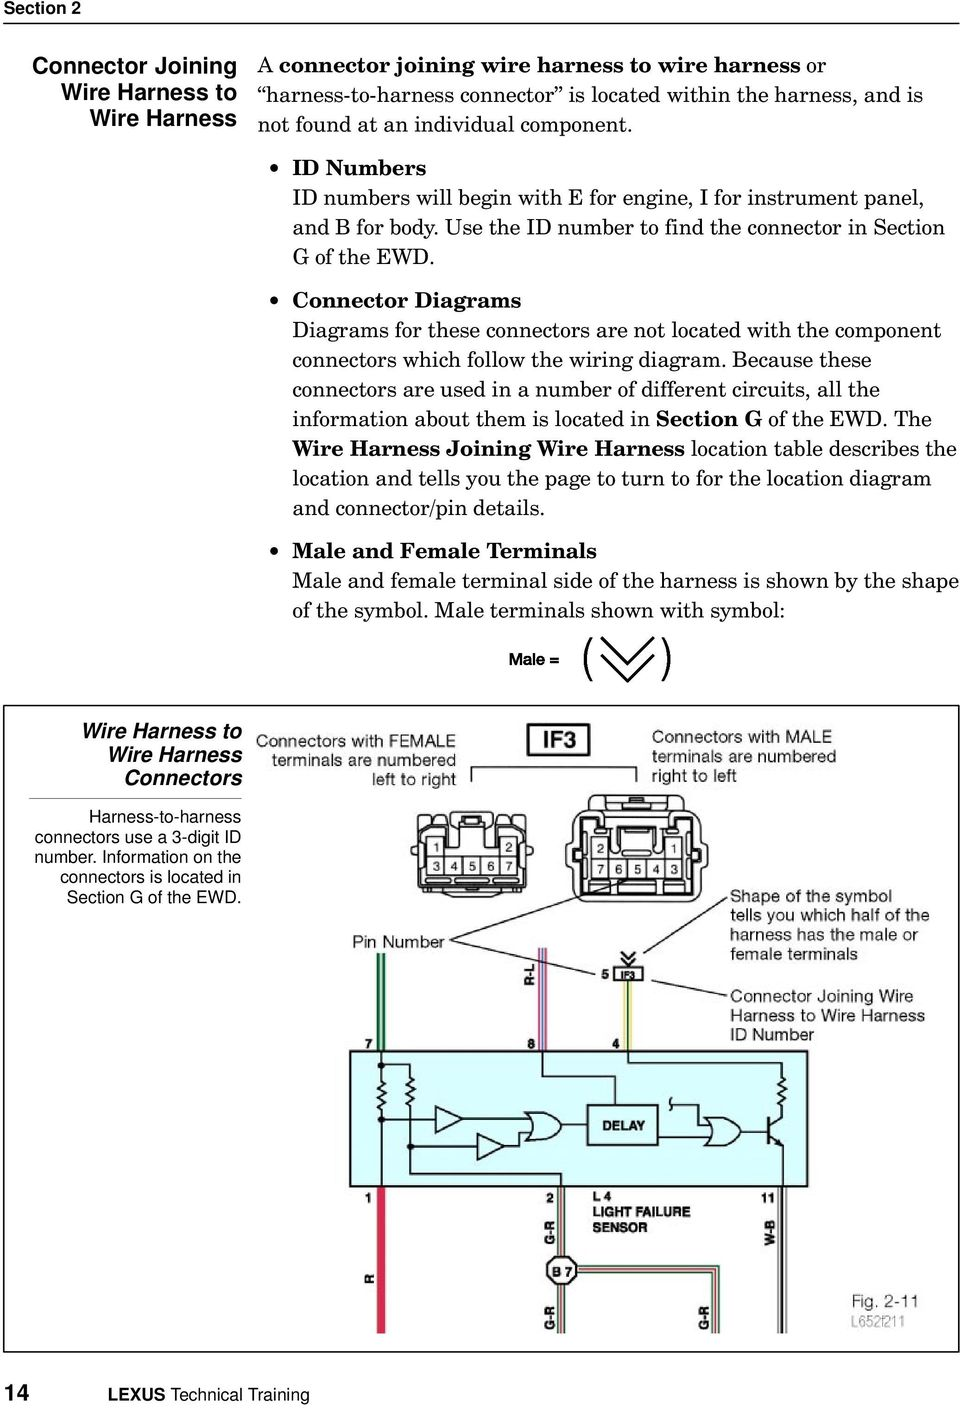 Using The Electrical Wiring Diagram Pdf Raven Cable Diagrams Connector For These Connectors Are Not Located With Component Which Follow